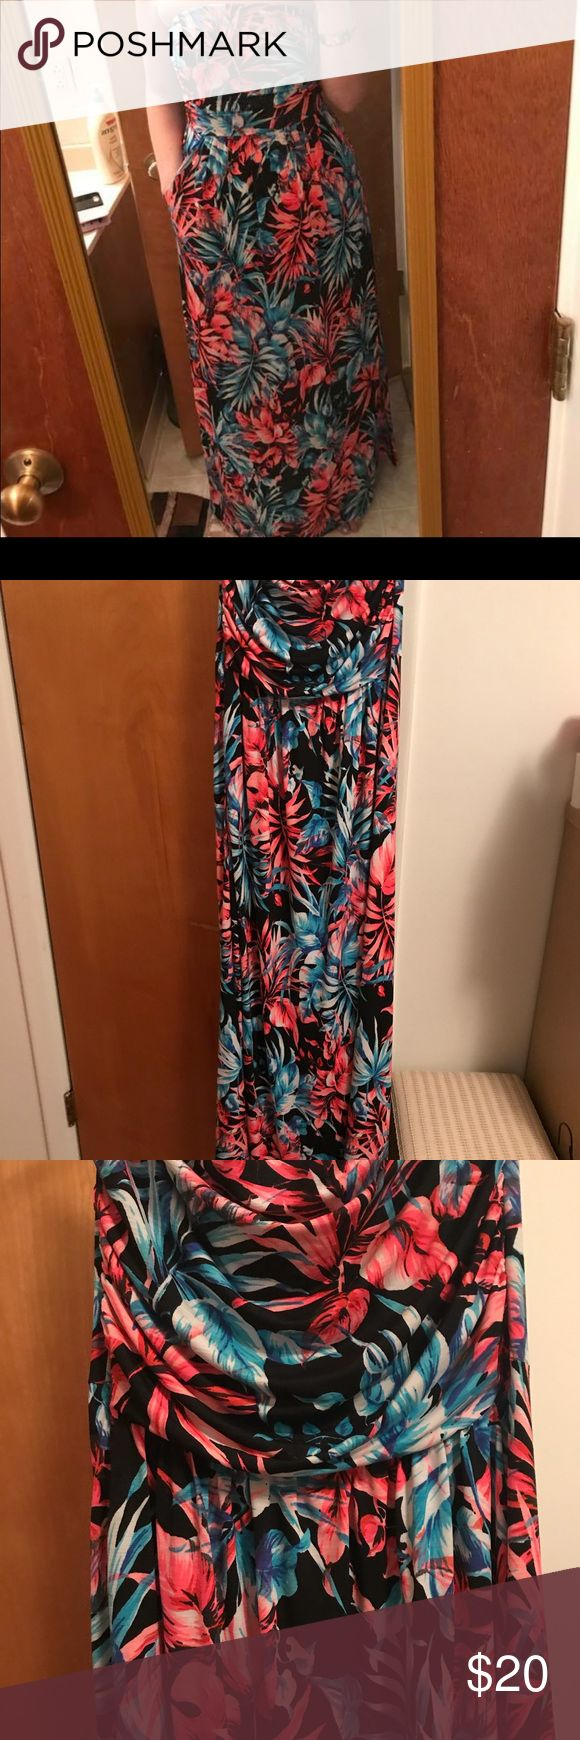 Filly Flair Pink Floral Strapless Dress Sz Medium Adorable strapless dress! Stays up very well and only worn once! So cute and in perfect condition! 💖💖💖  When you buy 3 or more items you will receive a free surprise! 💖💖💖 Filly Flair Dresses Maxi